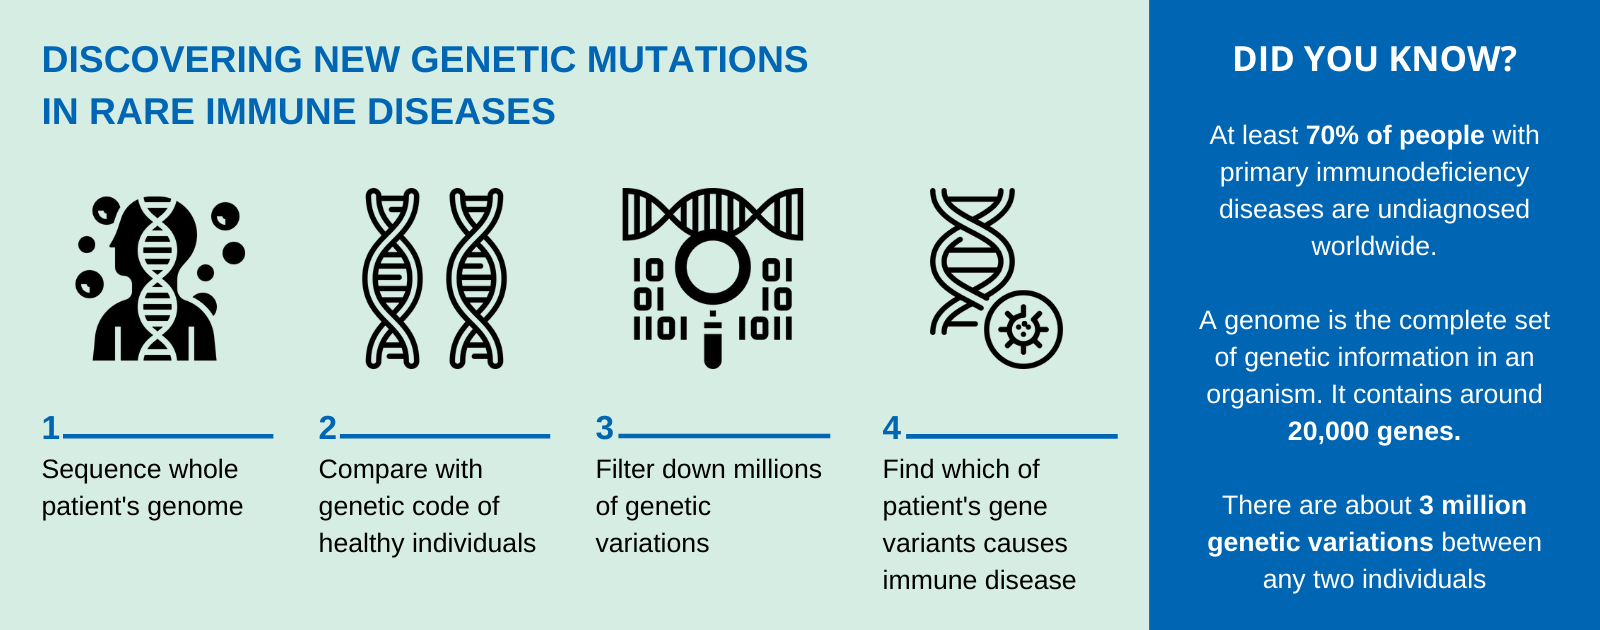 Discovering new genetic mutations in rare immune diseases